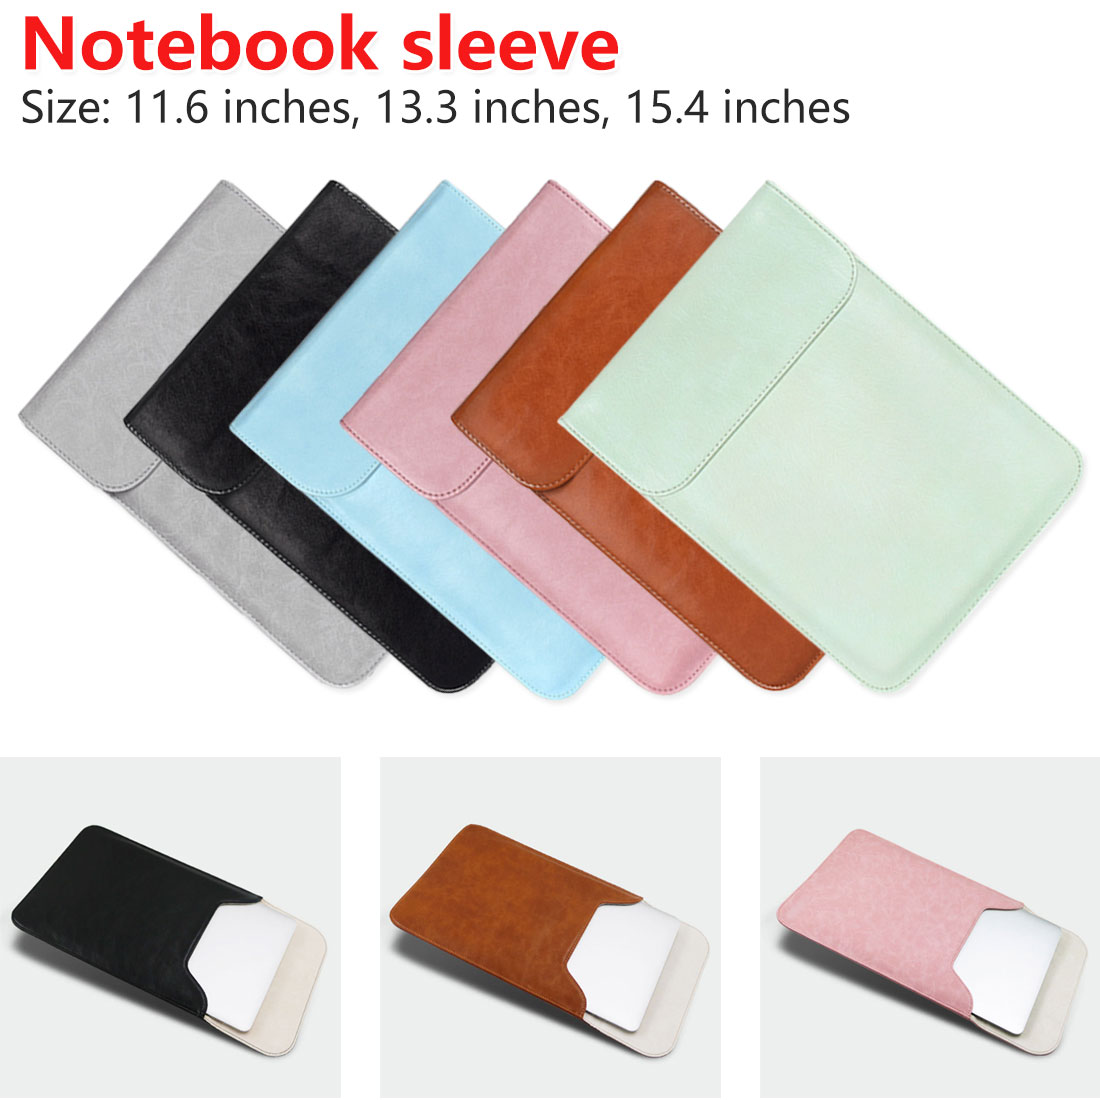 Laptop Bag Case 11 12 13 14 15.6 inch for Asus Dell Acer Hp Xiaomi Notebook Sleeve 12.5 13.3 14.1 Waterproof Matte Cover